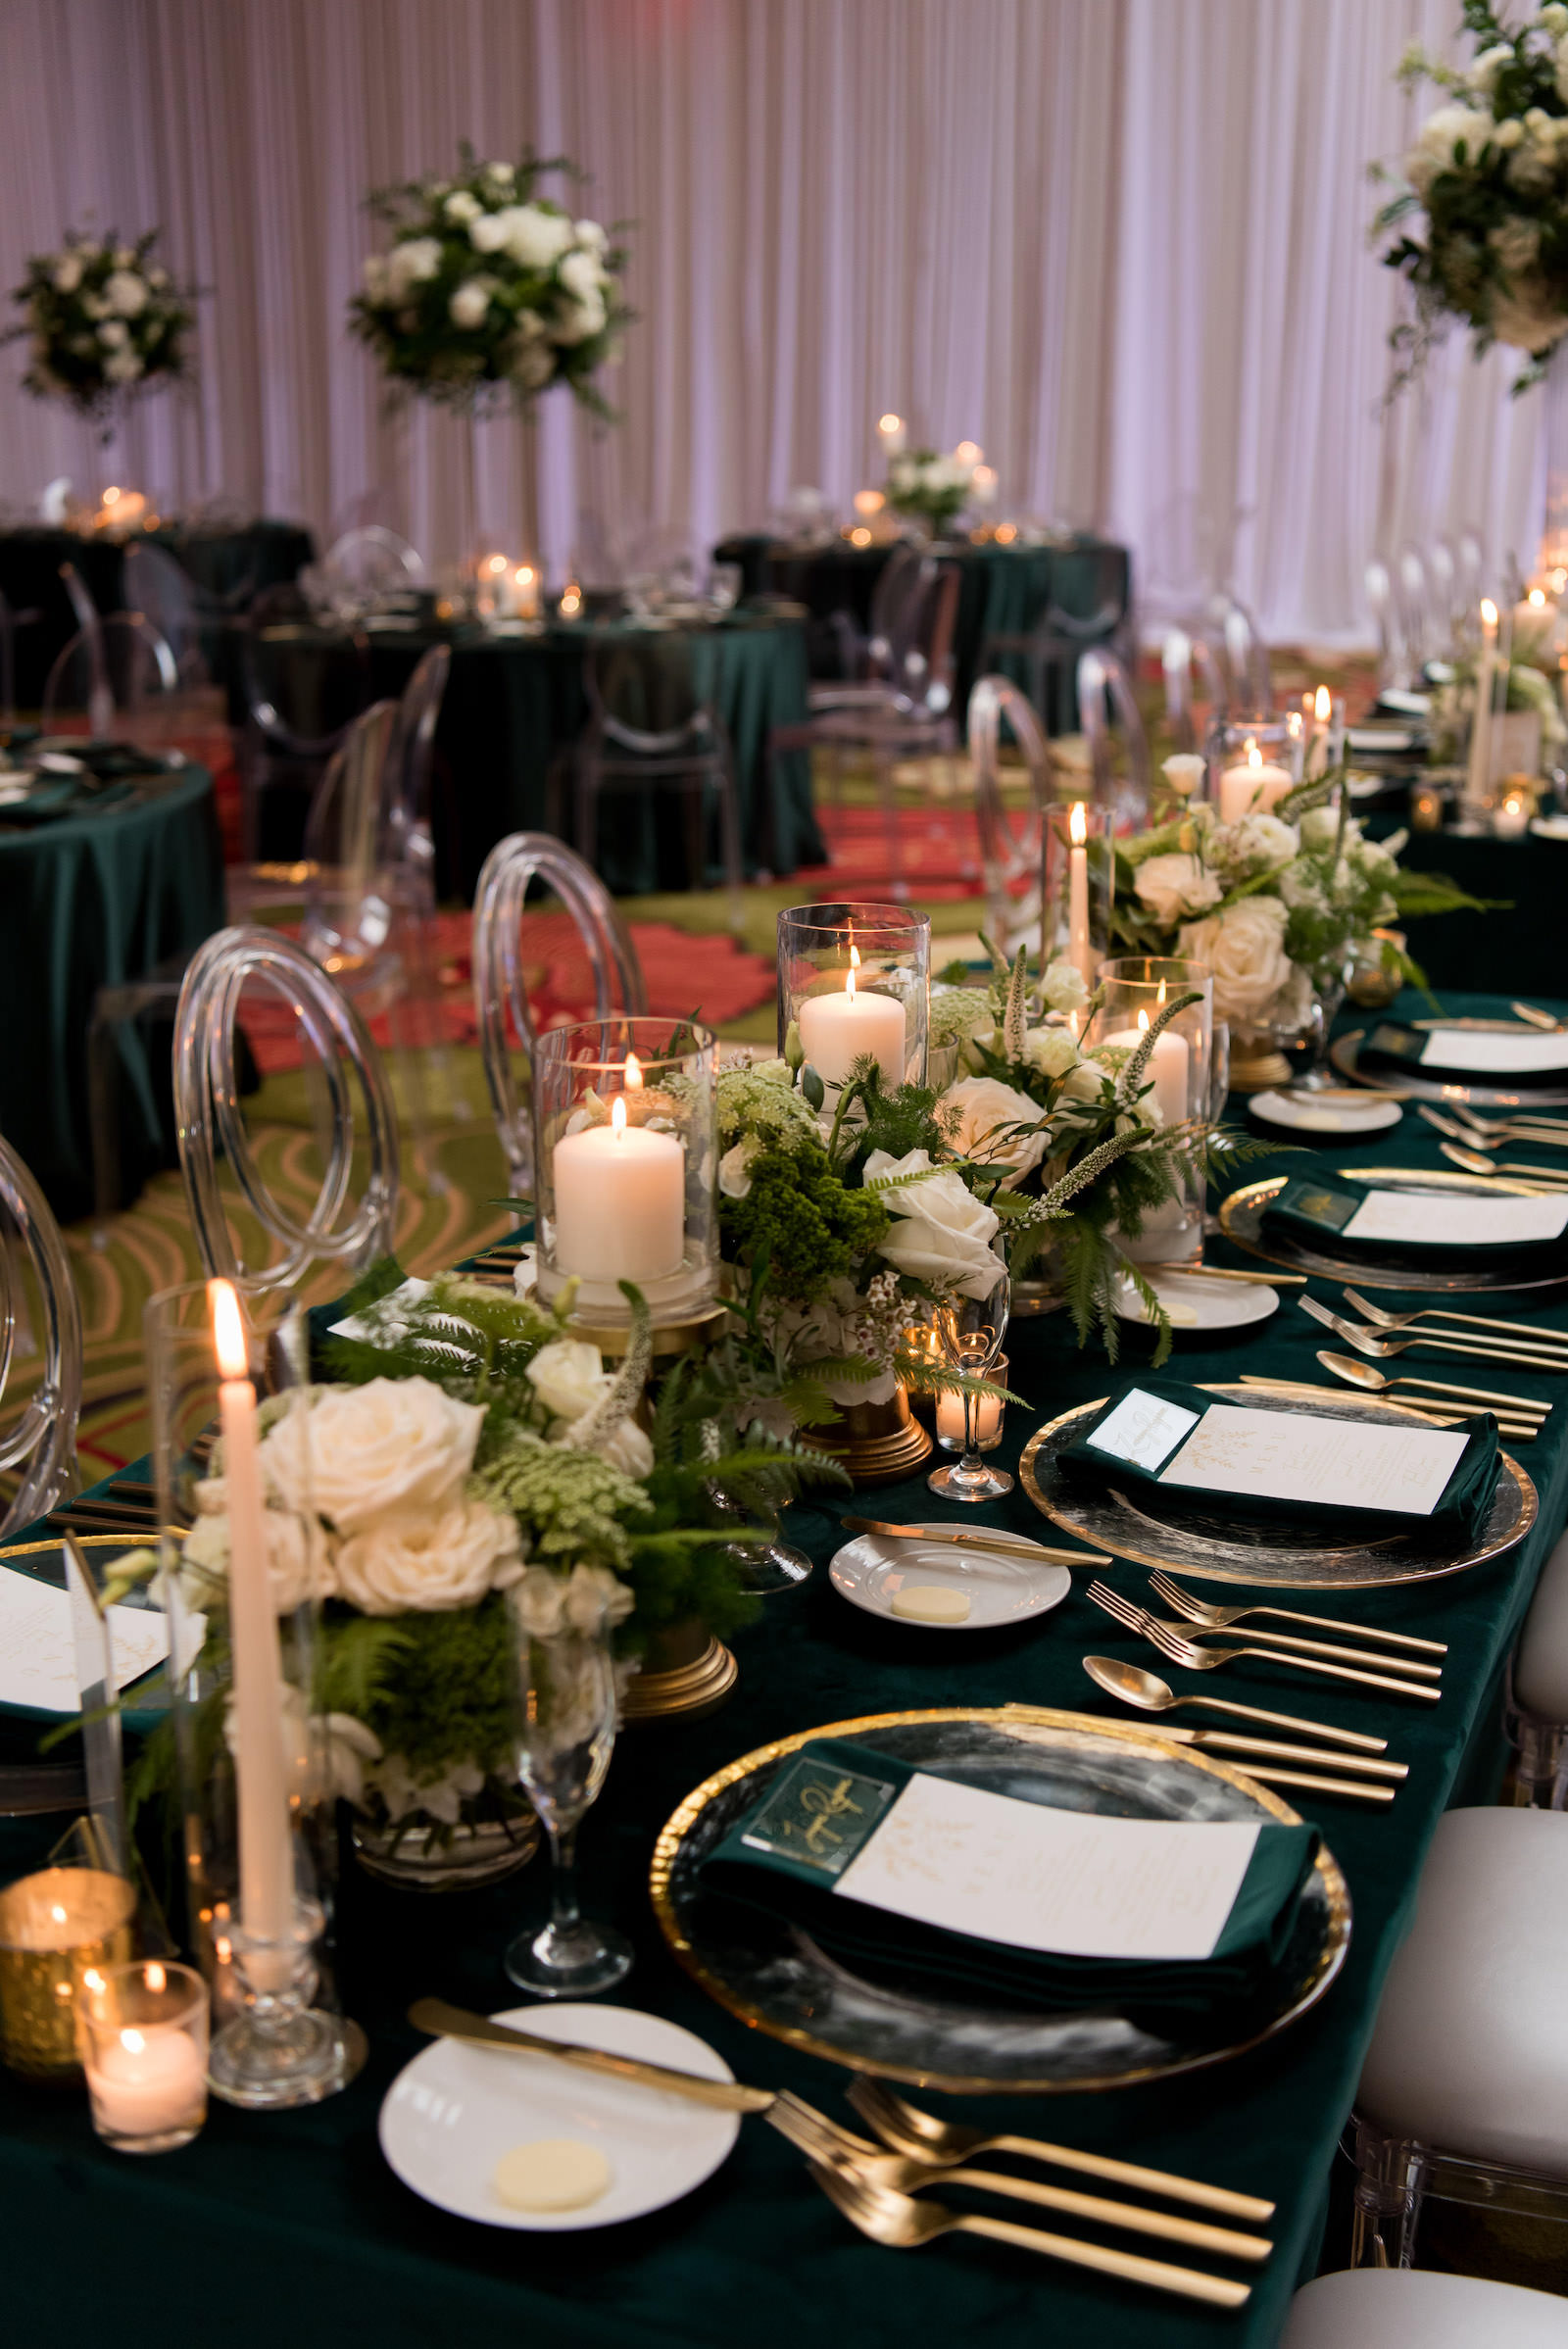 Elegant Wedding Reception Decor, Long Feasting Table with Emerald Green Linens, Gold Rimmed Chargers and Flatware Candles, Low White Roses and Greenery Floral Arrangements, Acrylic Chiavari Chairs | Tampa Bay Wedding Planner Parties A'la Carte | Wedding Chairs, Chargers, Chairs and Flatware Rentals A Chair Affair | Wedding Florist Bruce Wayne Florals